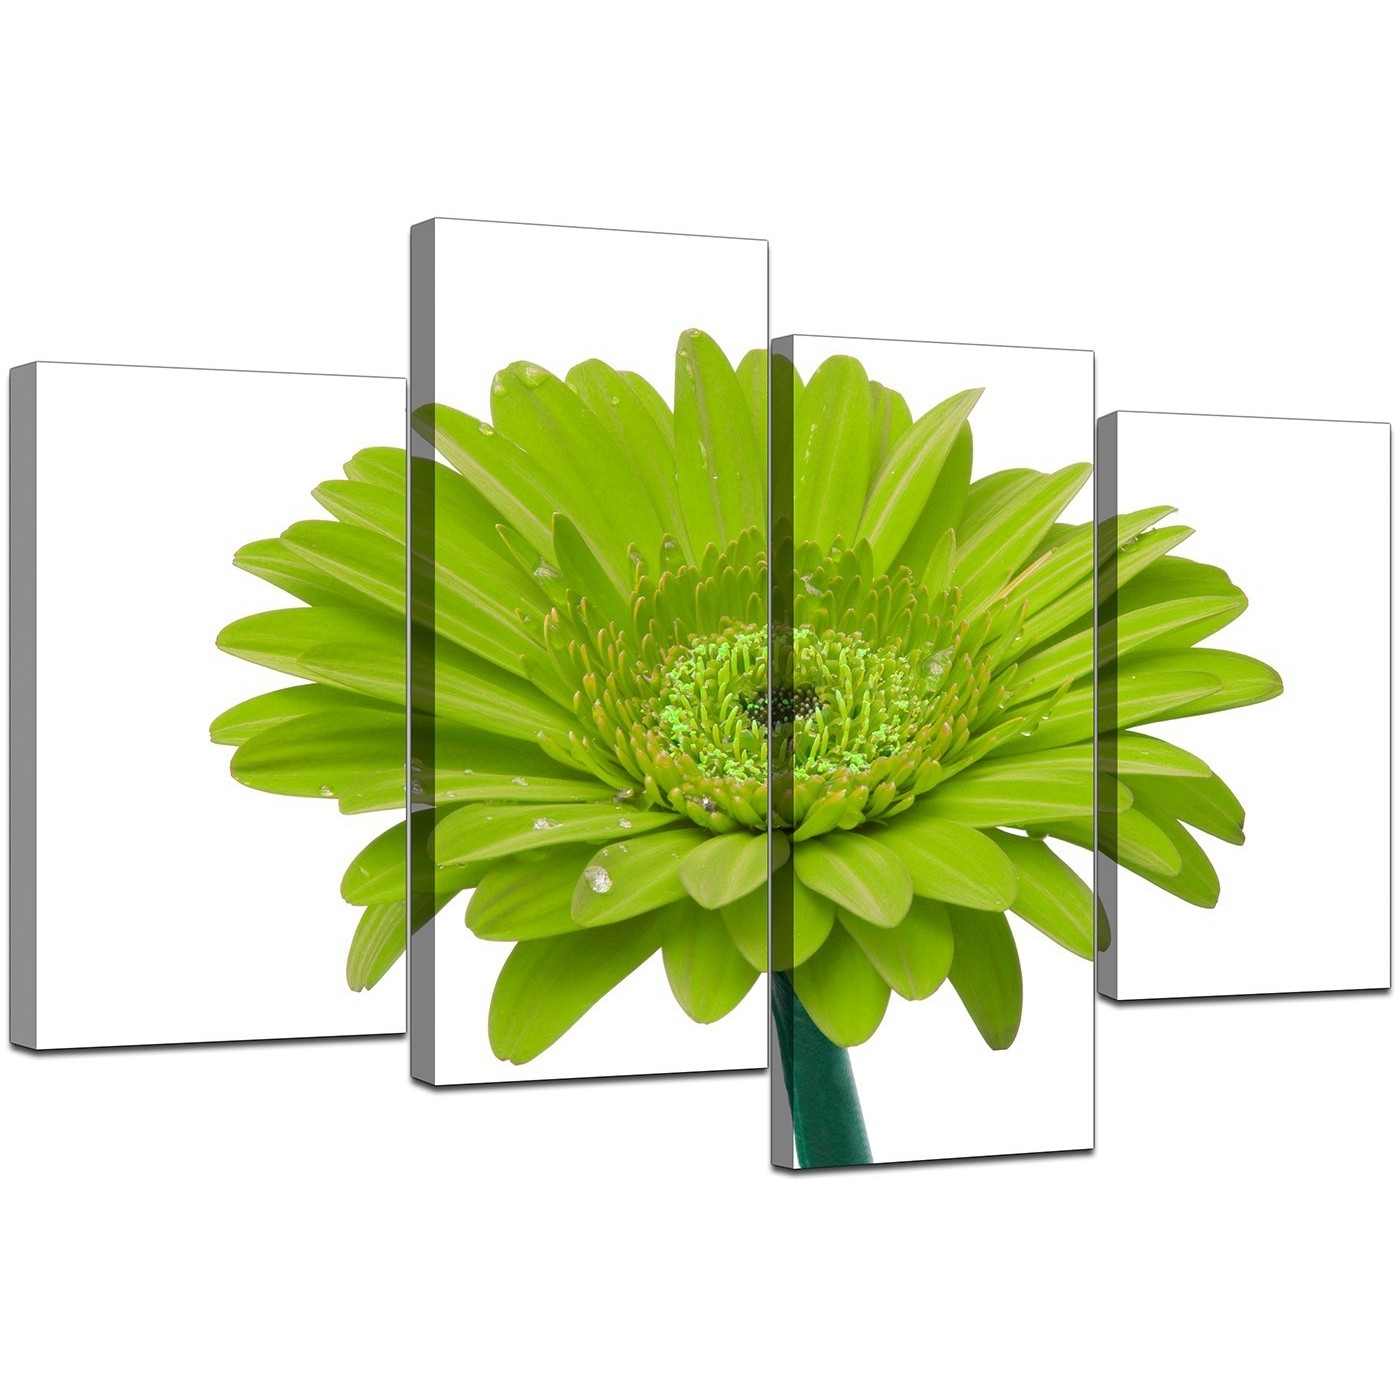 Canvas Wall Art Of Flower In Lime Green For Your Living Room in Green Wall Art (Image 5 of 20)